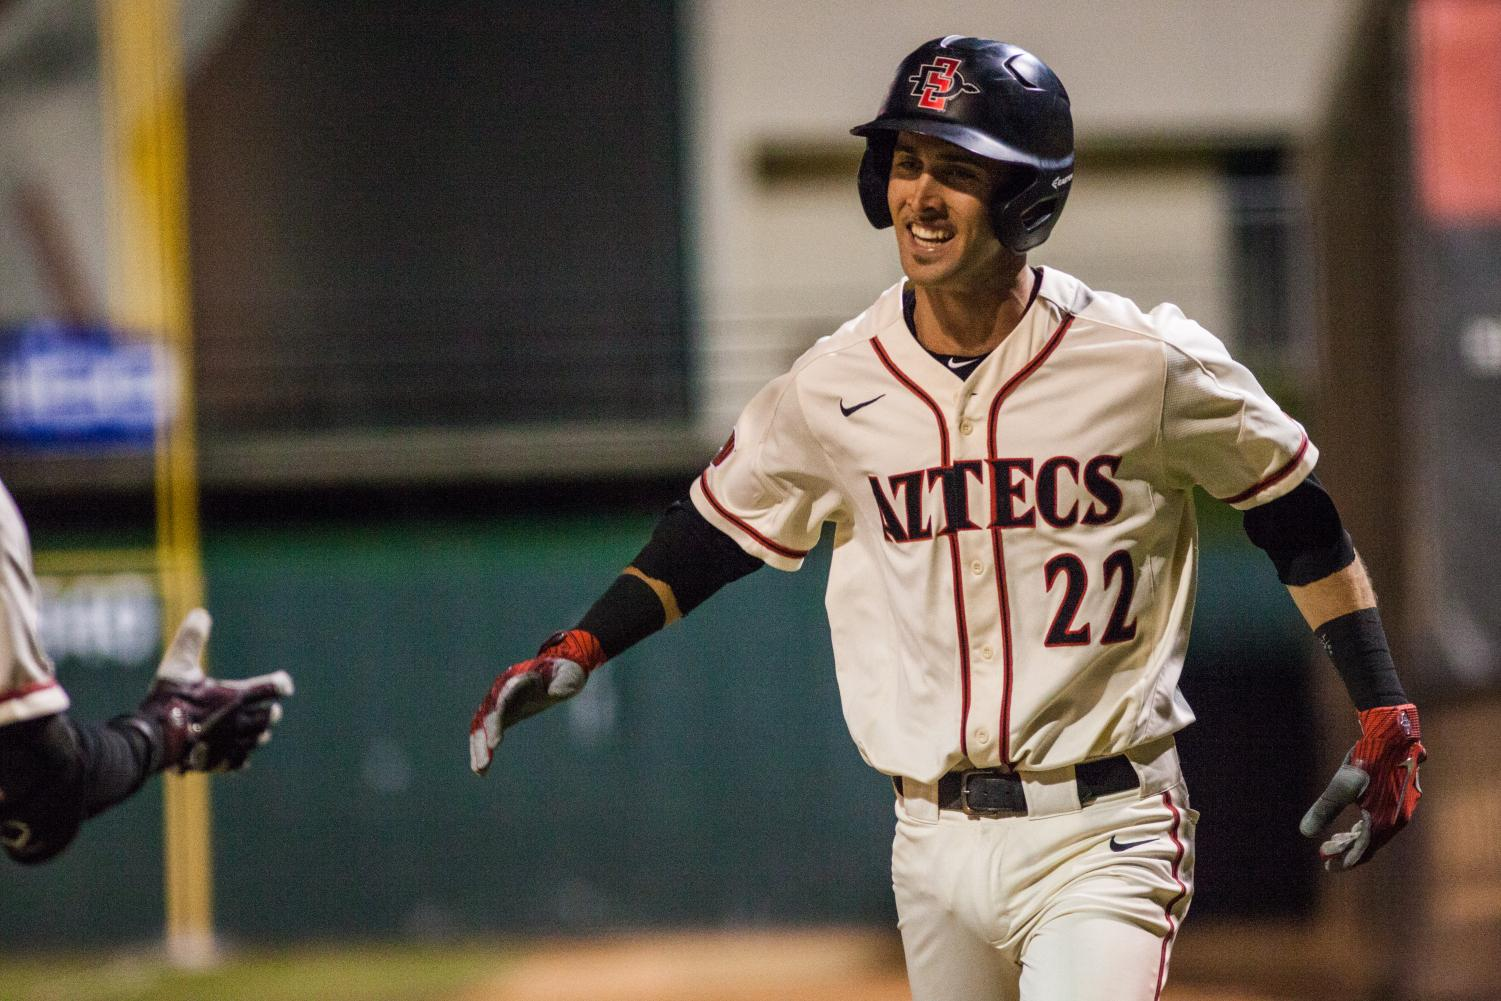 Senior infielder David Hensley celebrates after hitting a sacrifice fly during the Aztecs two-run seventh inning in a 2-1 victory over San Jose State on May 24 at Tony Gwynn Stadium.